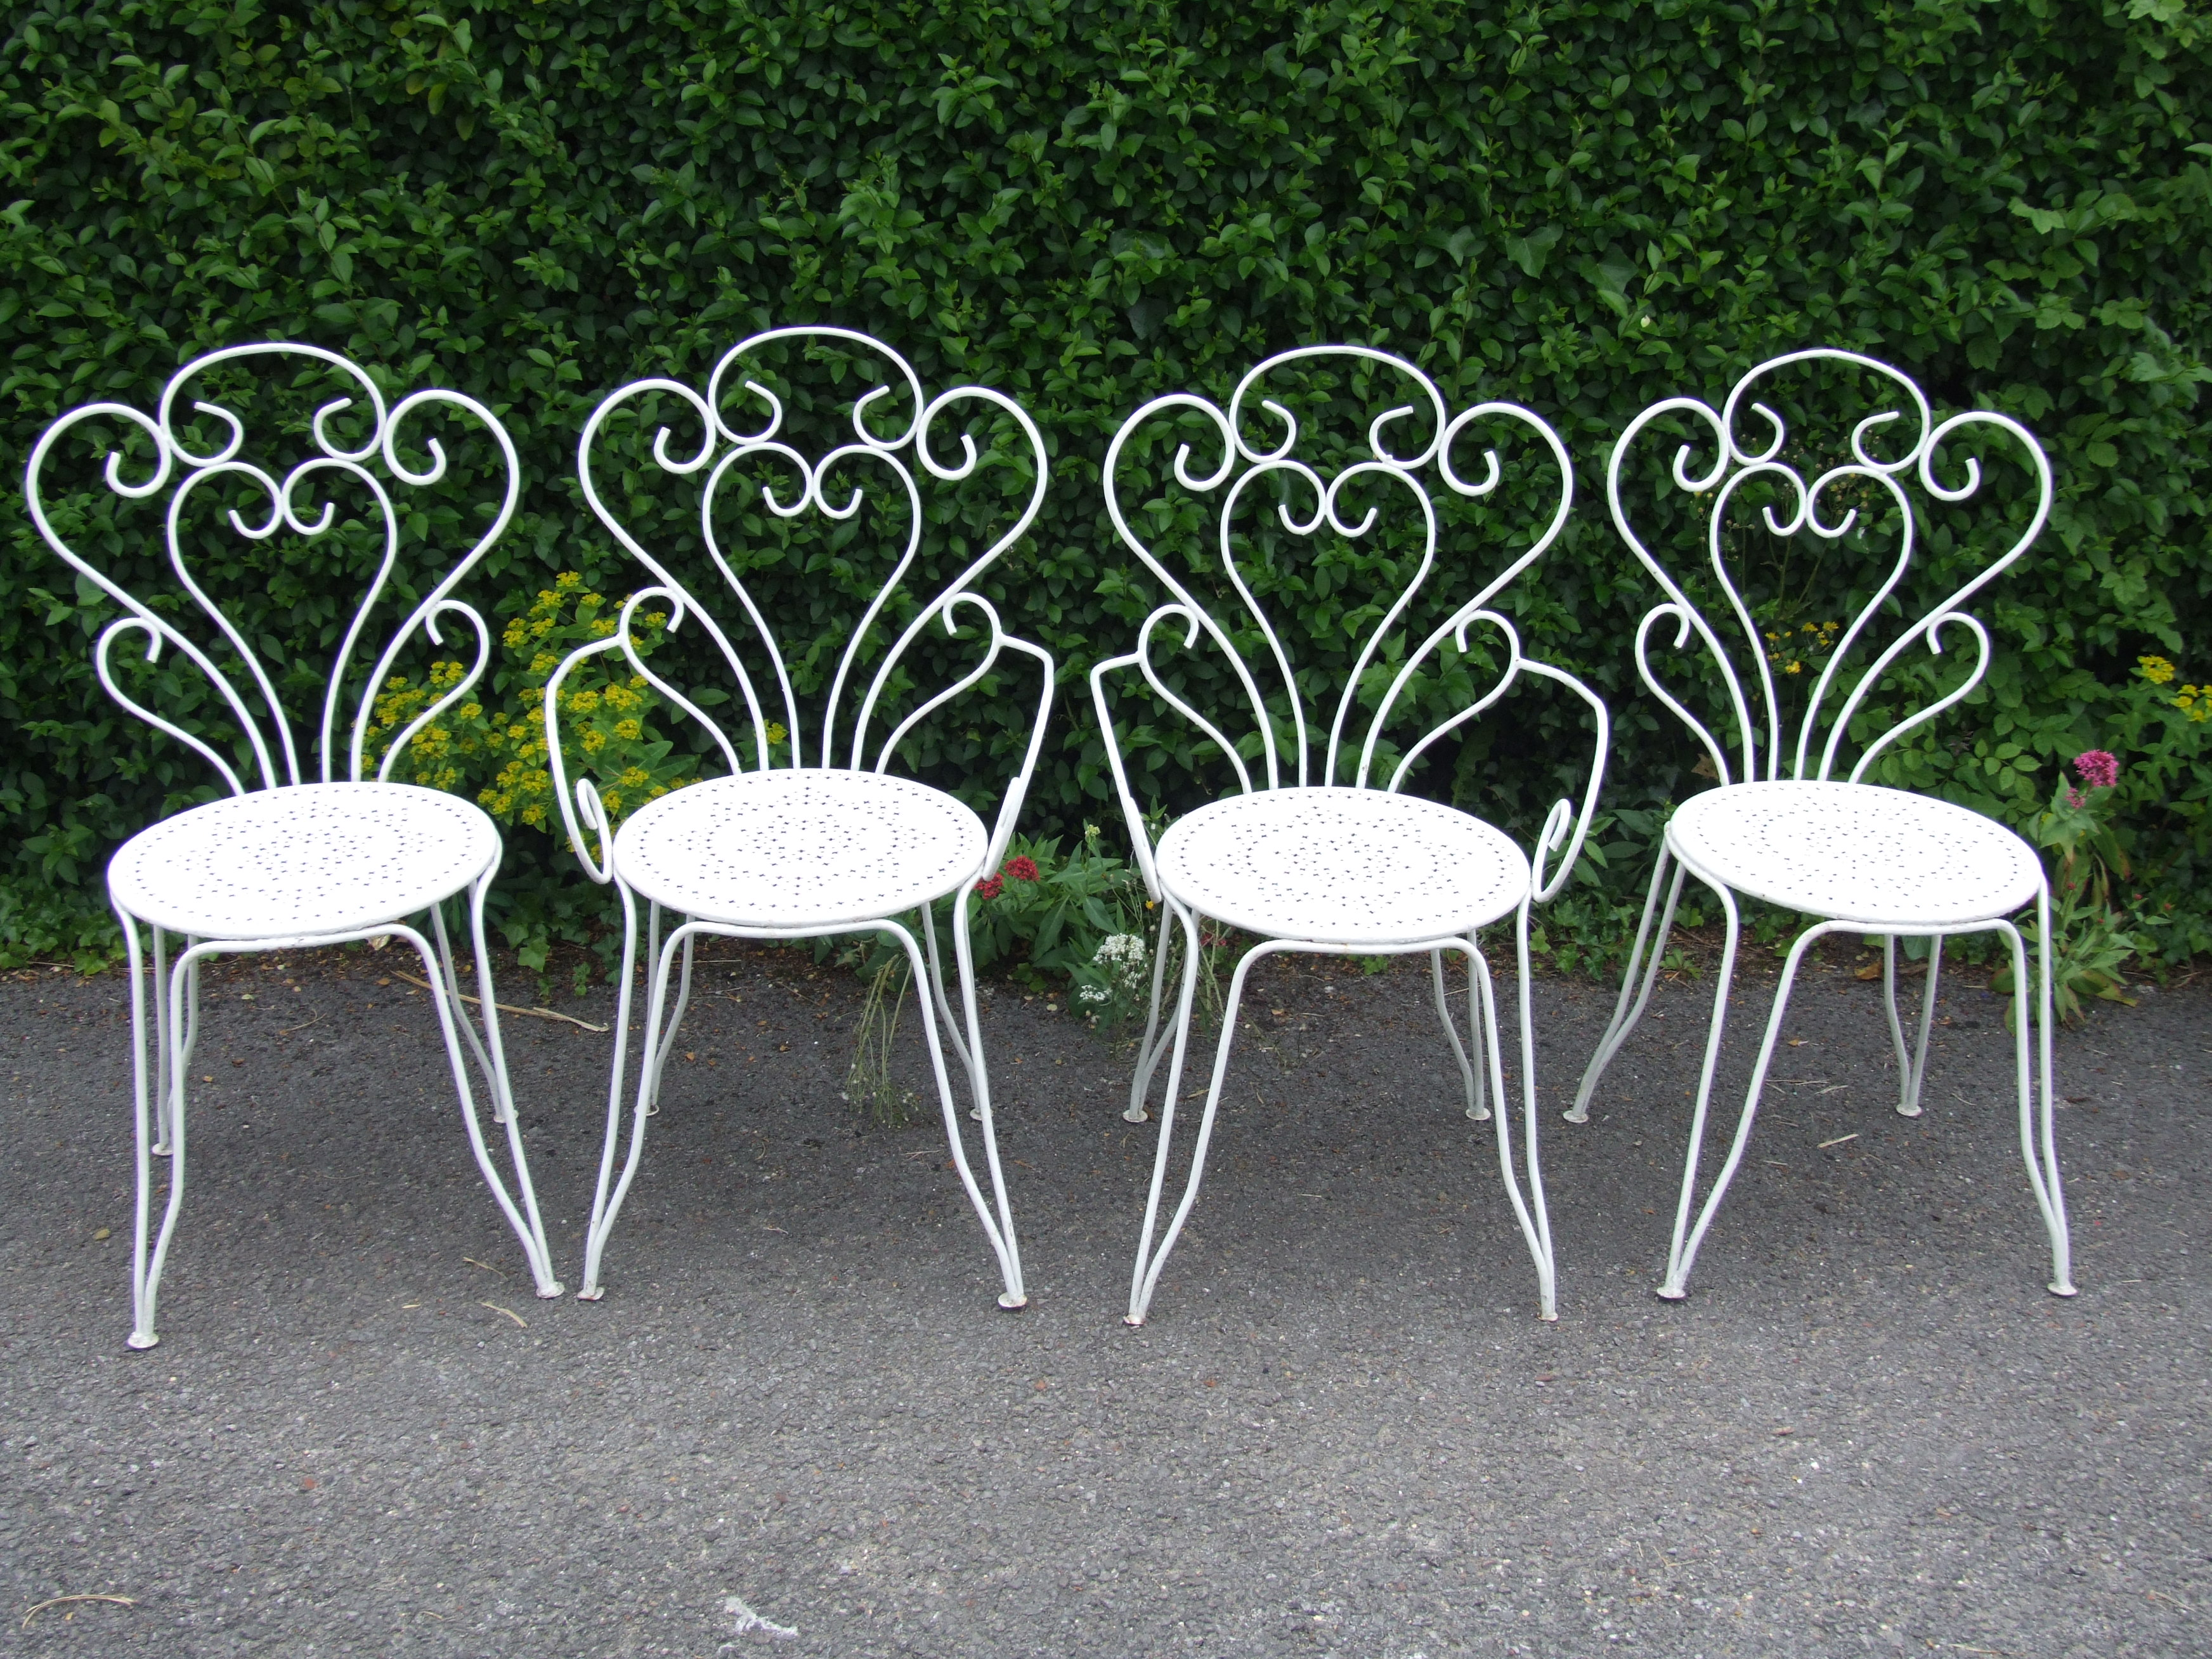 G177 s lovely set 4 vintage french wrought iron garden patio caf chairs la belle toffe French metal garden furniture